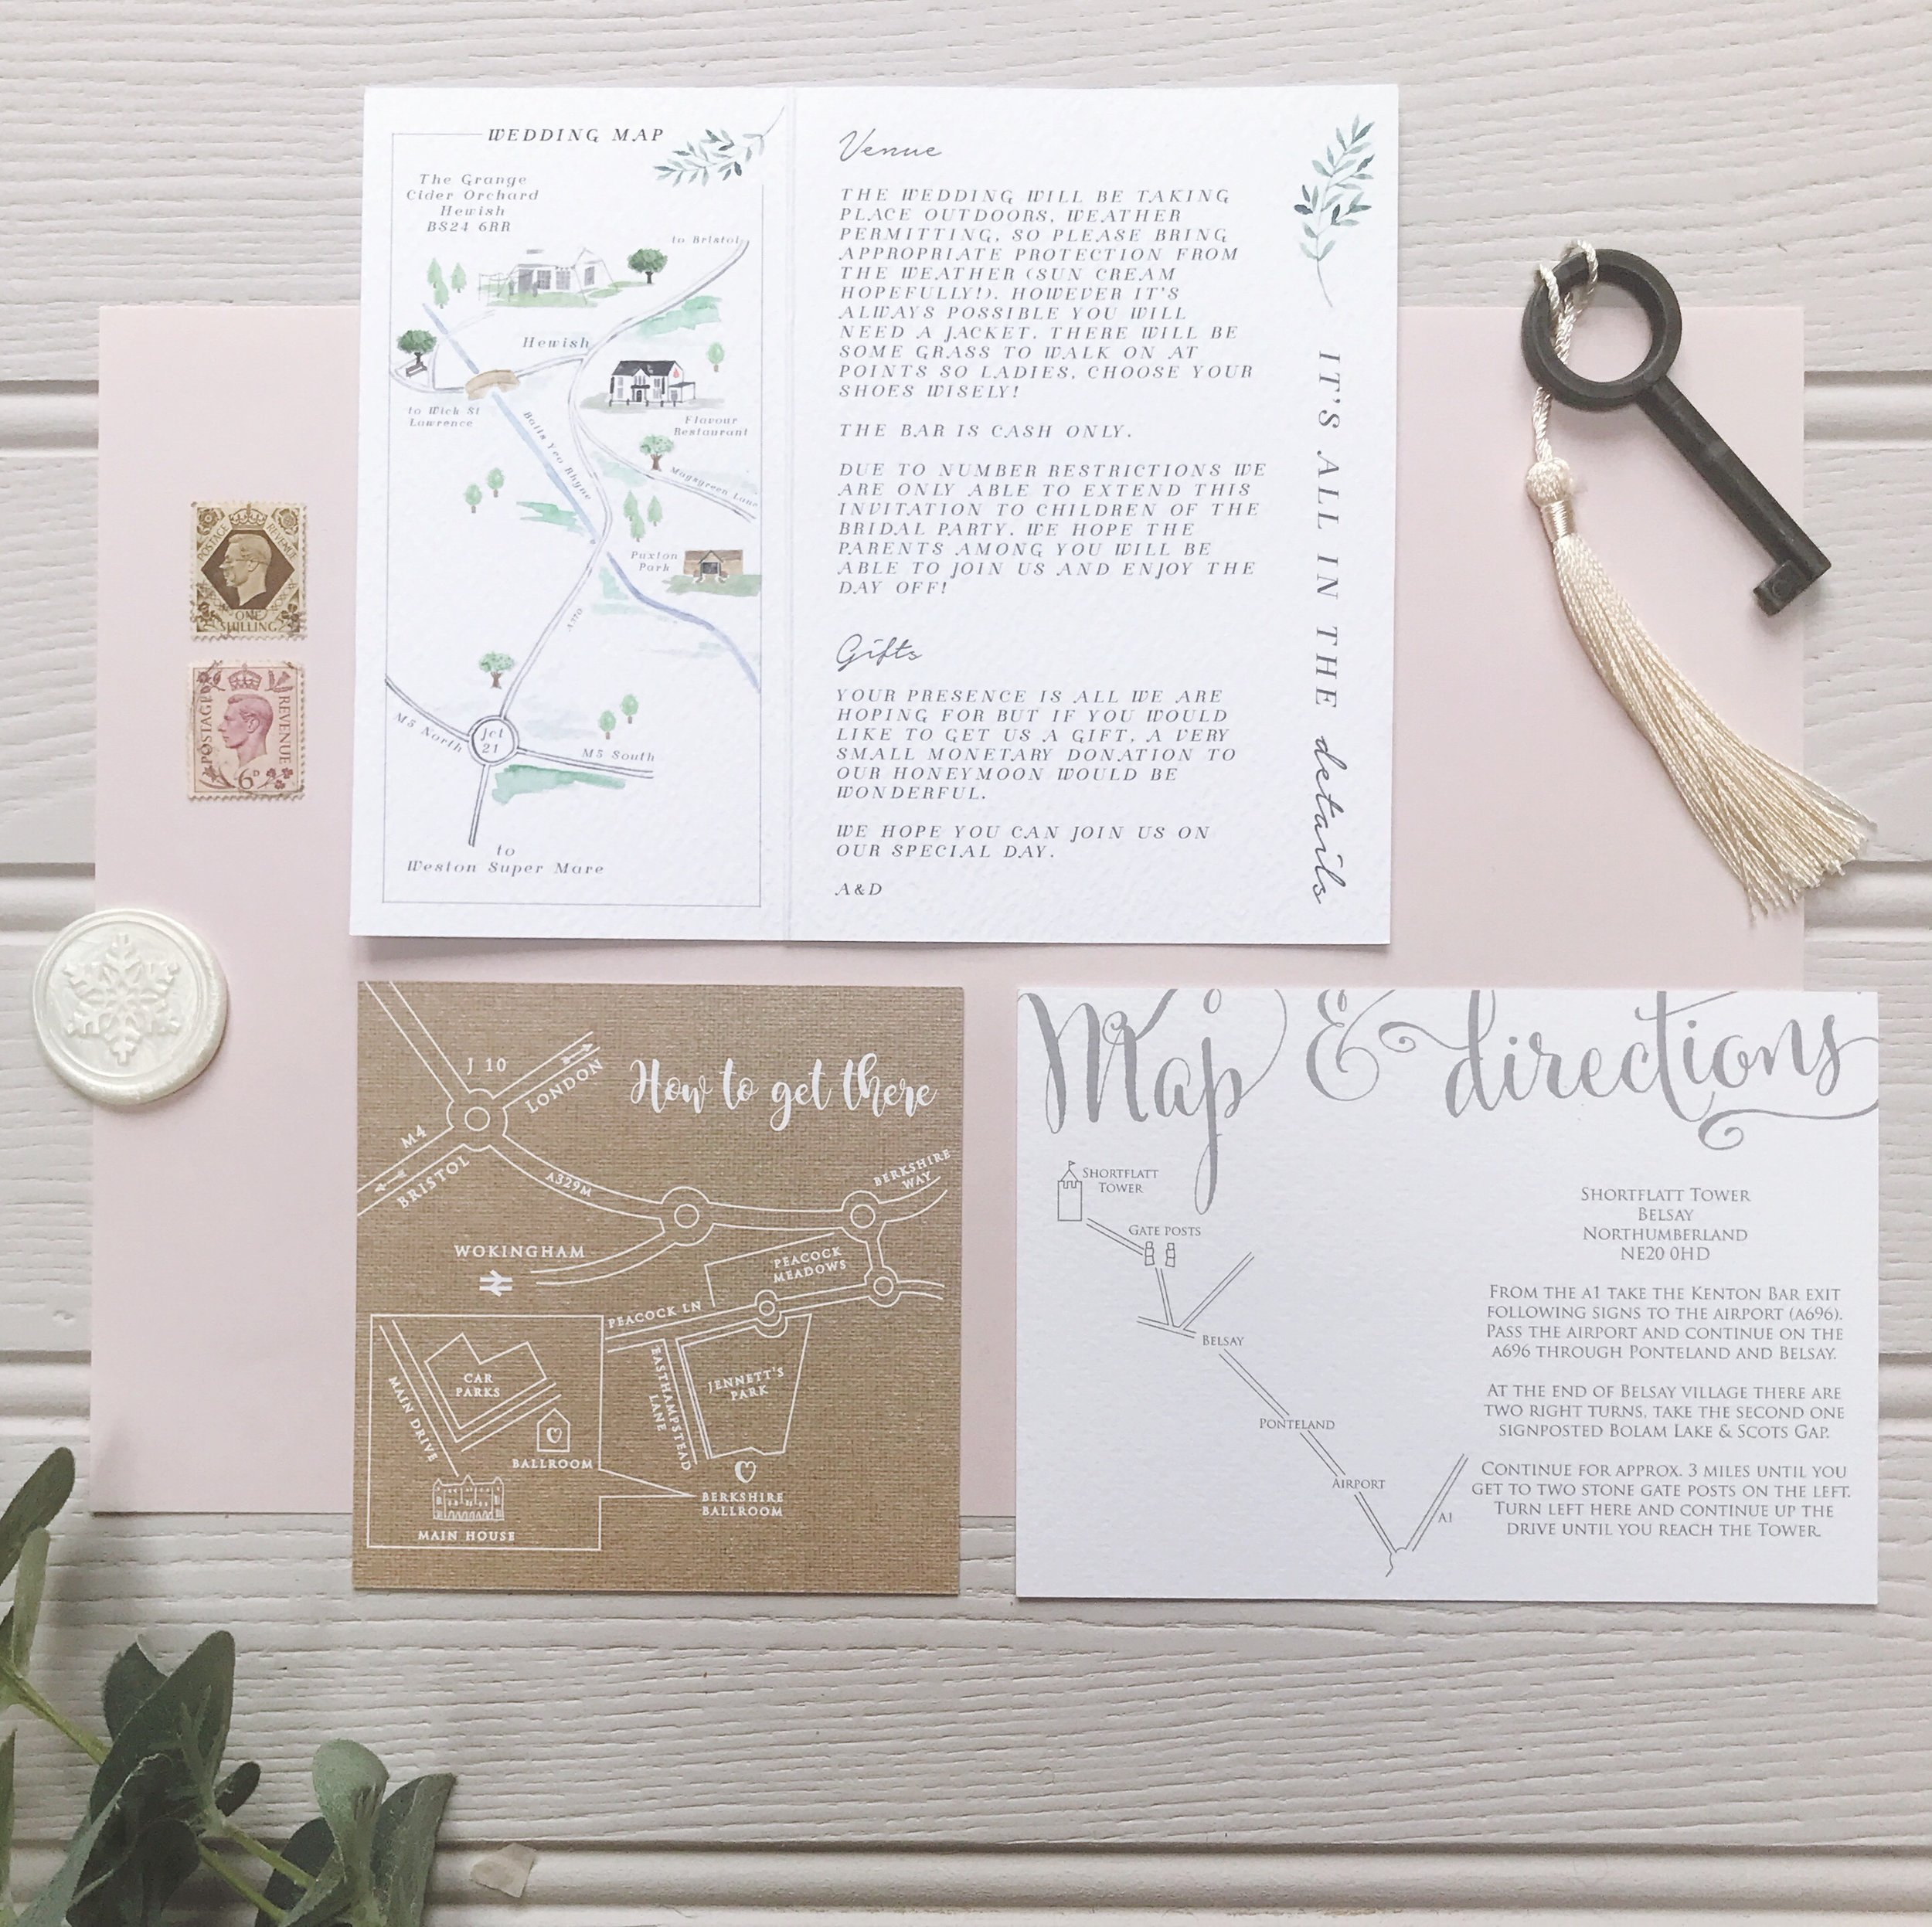 Custom Maps - Add a unique map to your invitations. Digital line drawn maps start at £15 and watercolour maps start at £30.